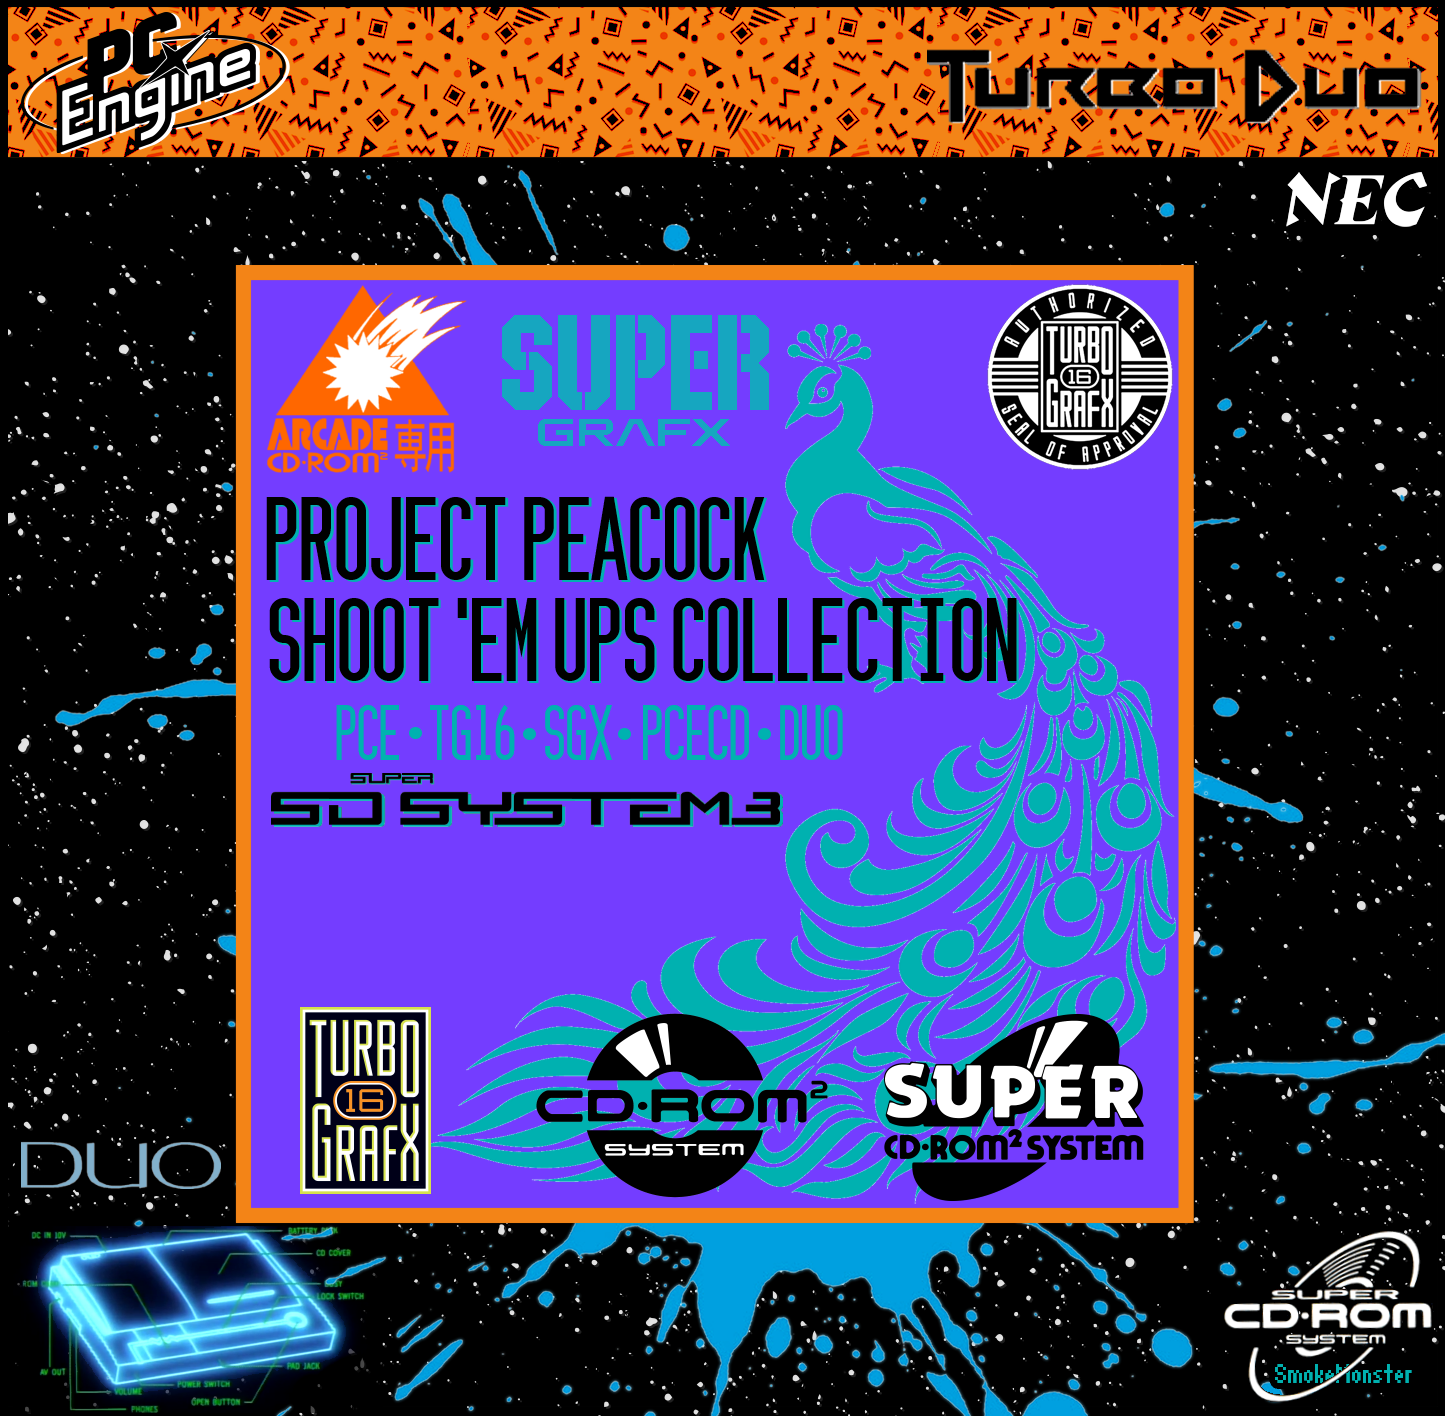 Project Peacock 2.0: Every Shoot 'em Up for the PC Engine Platform (CD, PCE/TG16, SGX)